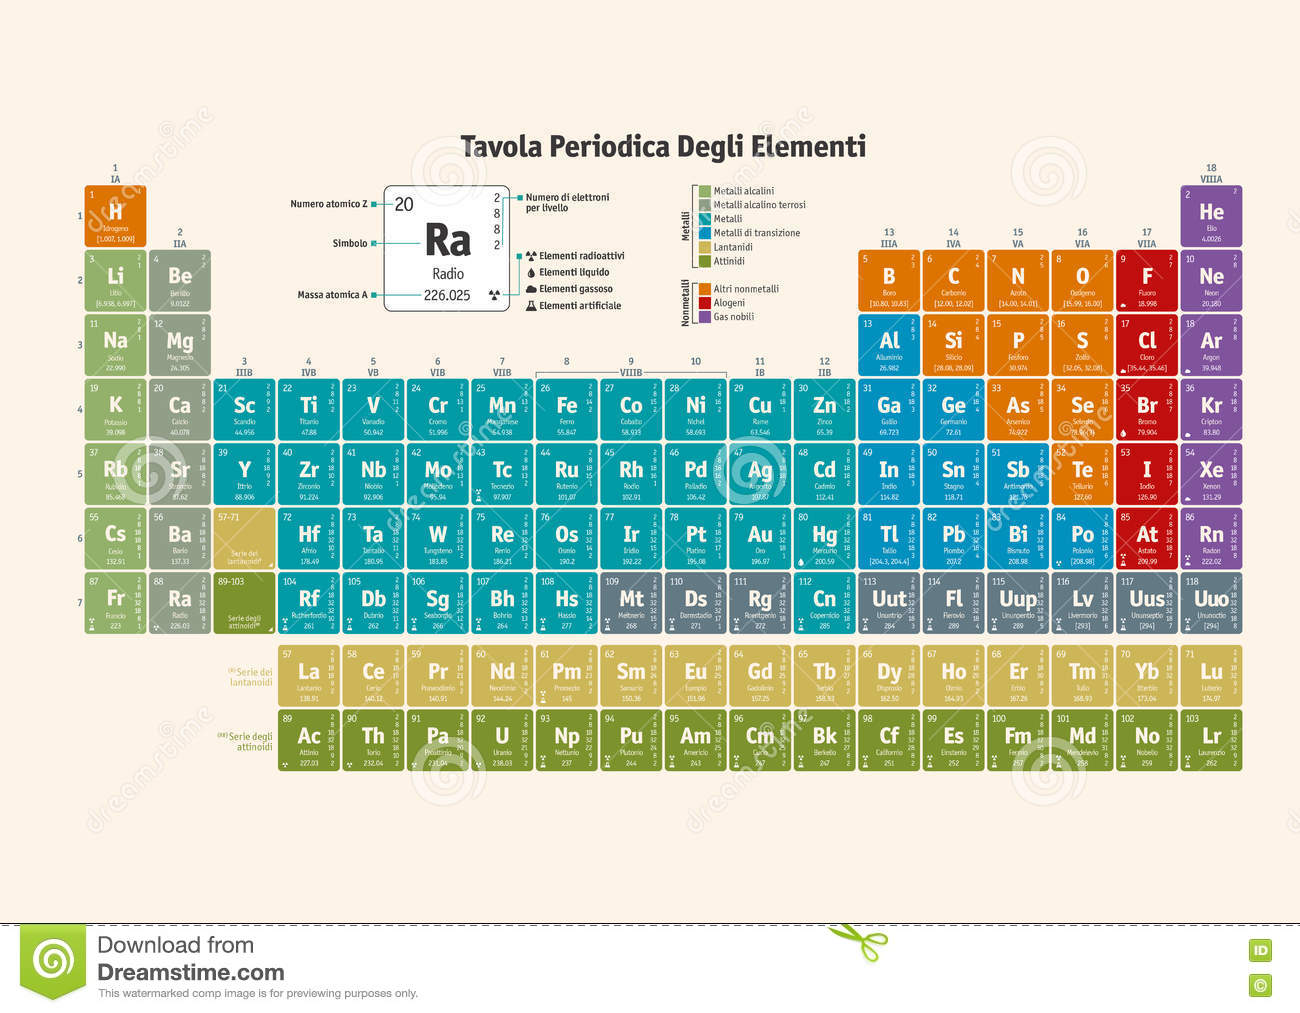 Periodic table of the chemical elements italian version - Tavola periodica degli elementi chimici ...